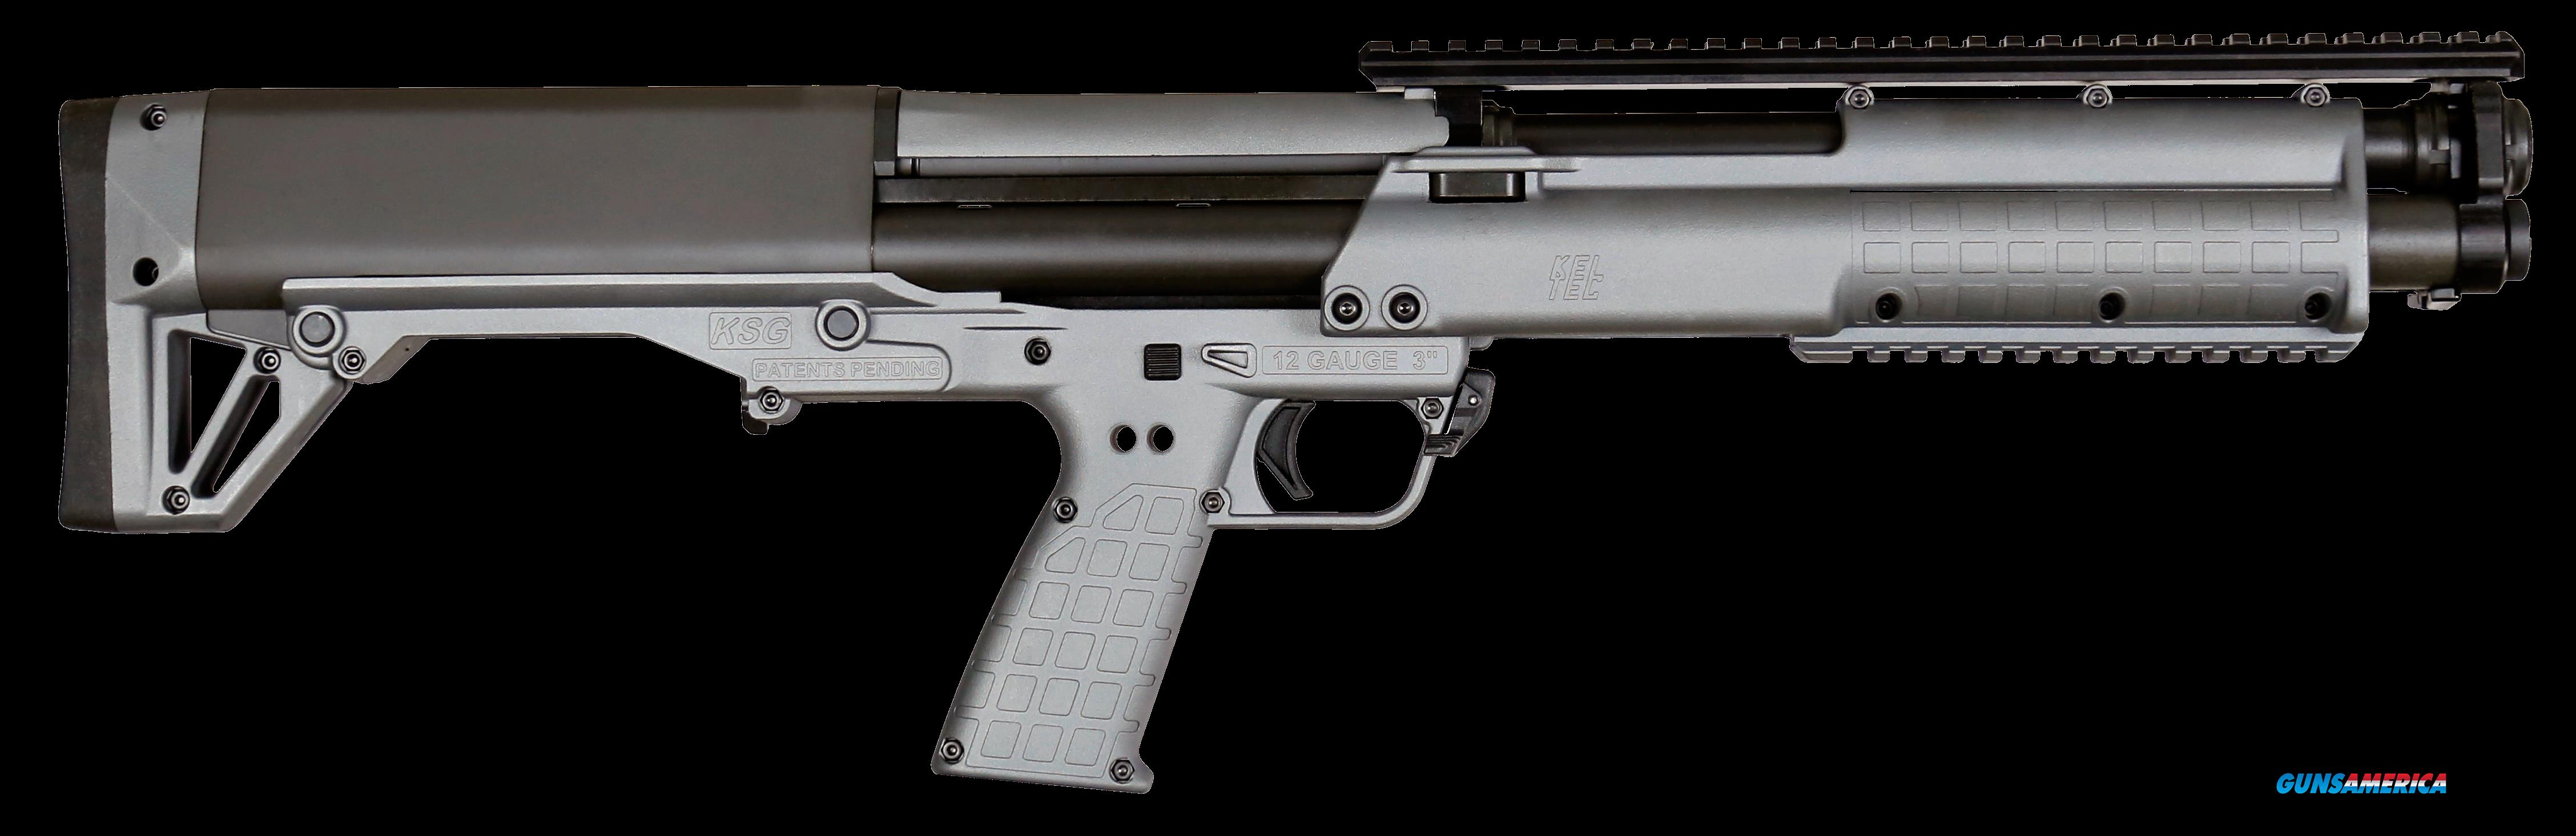 "Kel-Tec KSGGY KSG Pump 12 Gauge 18.5"" 3"" 12+1 Synthetic Gray  Guns > Shotguns > Kel-Tec Shotguns > KSG"